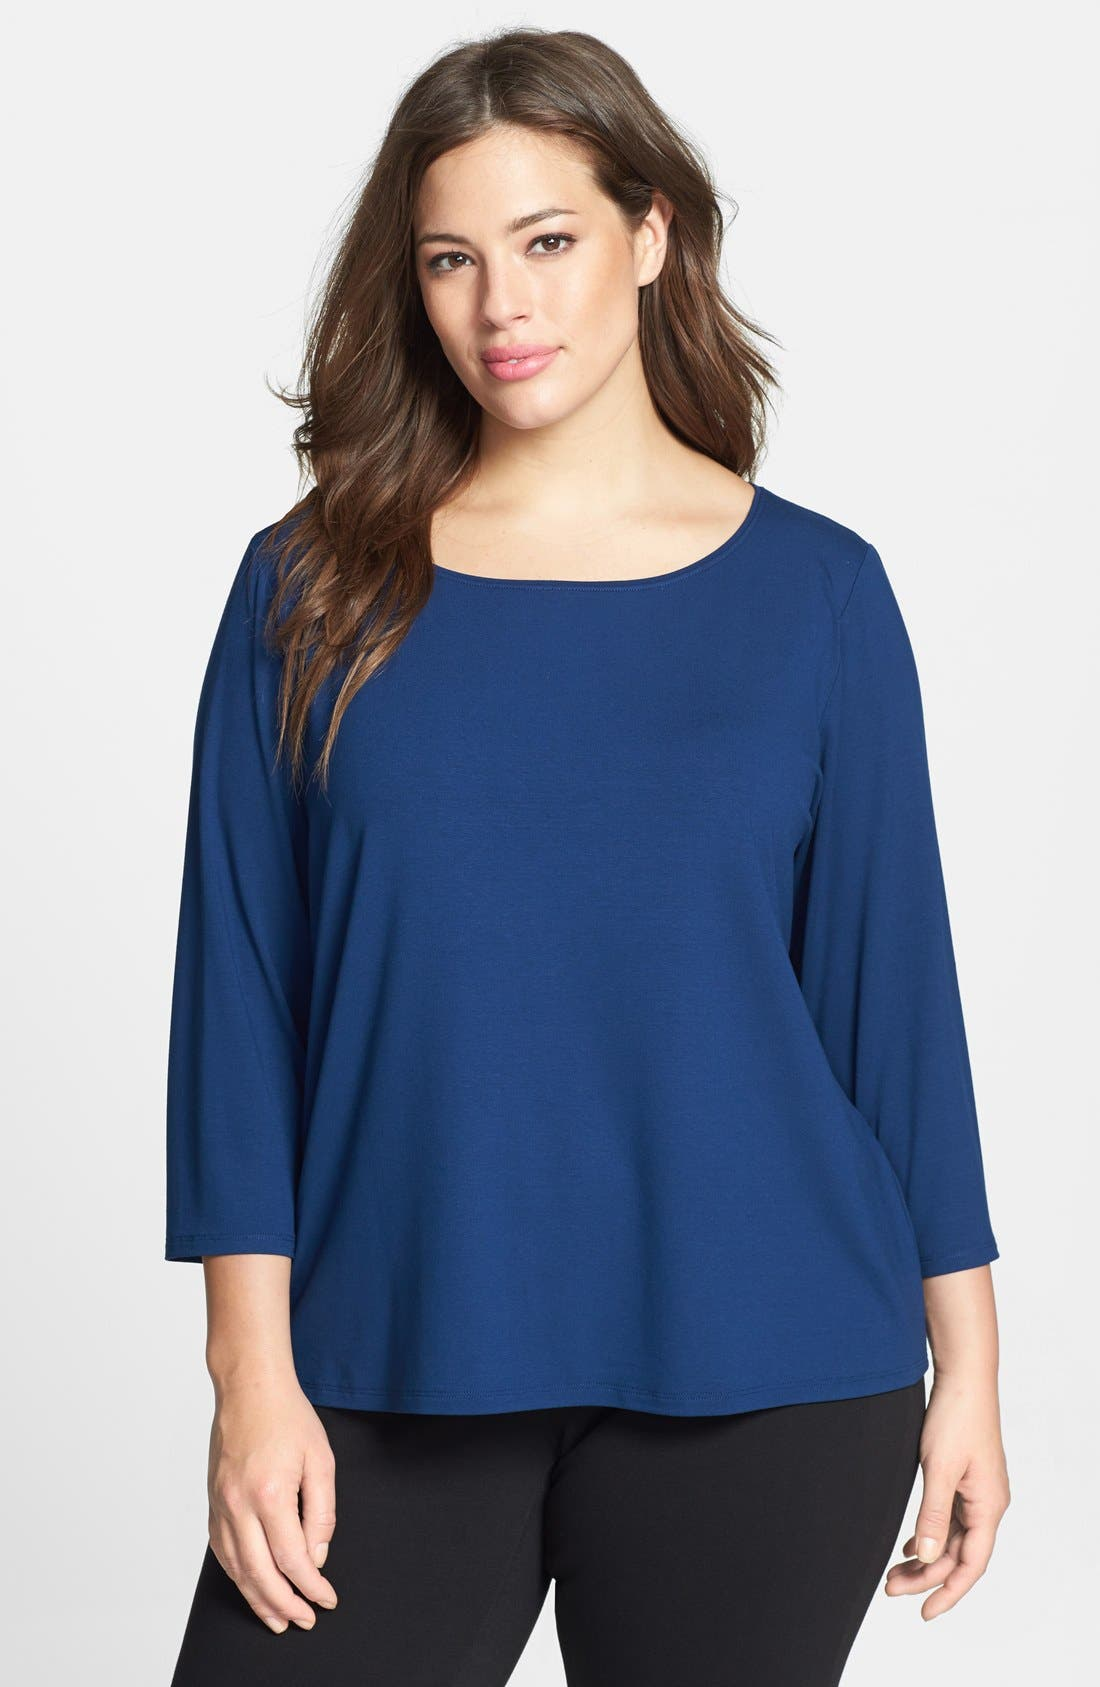 Alternate Image 1 Selected - Eileen Fisher Ballet Neck Jersey Tee (Plus Size)